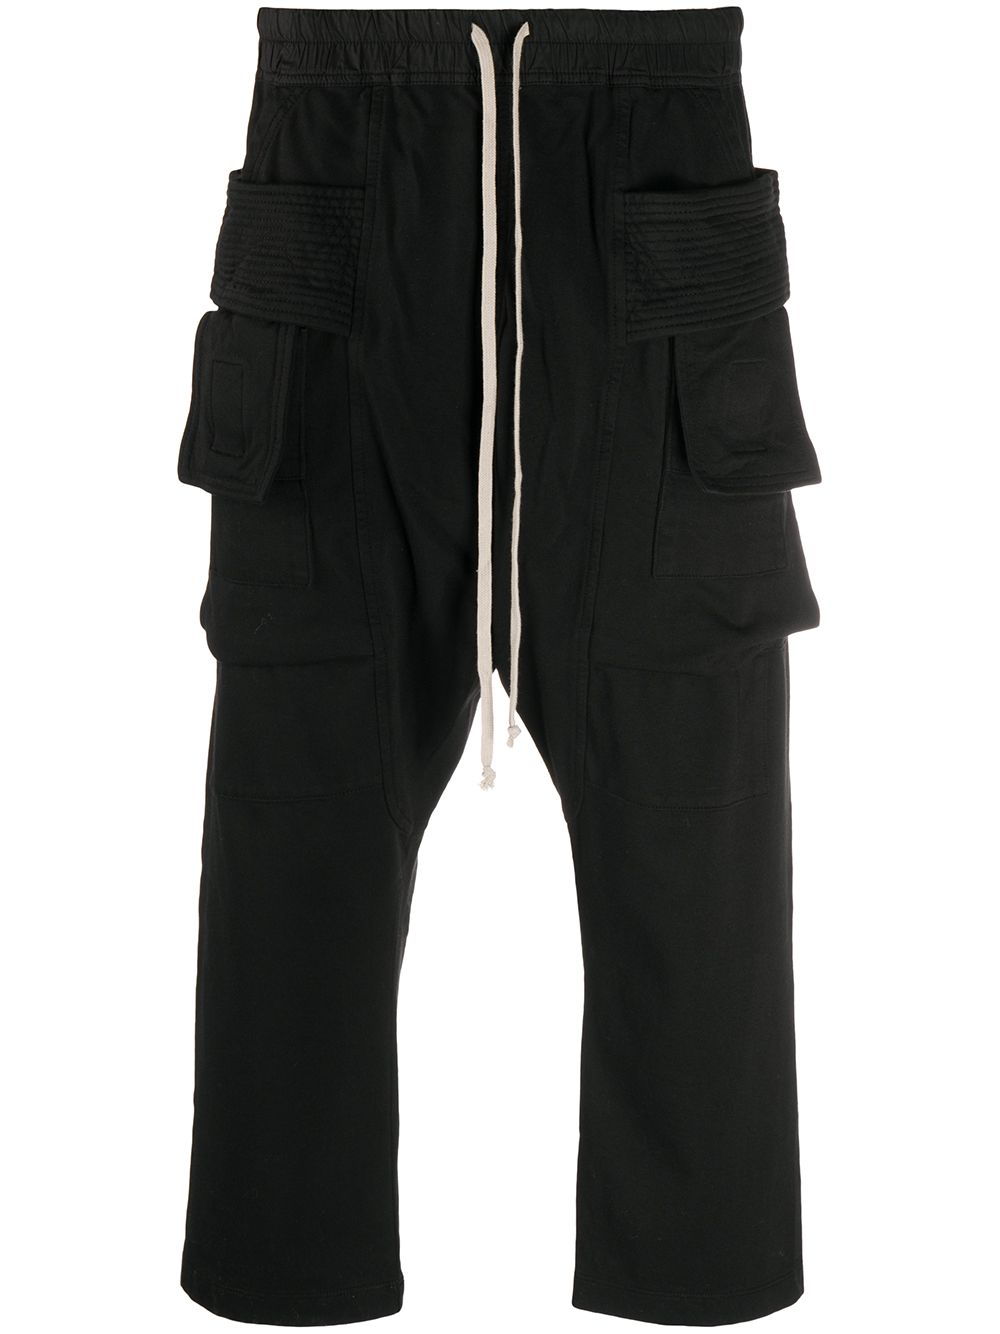 RICK OWENS DRKSHDW Cropped Drawstring Trousers Black